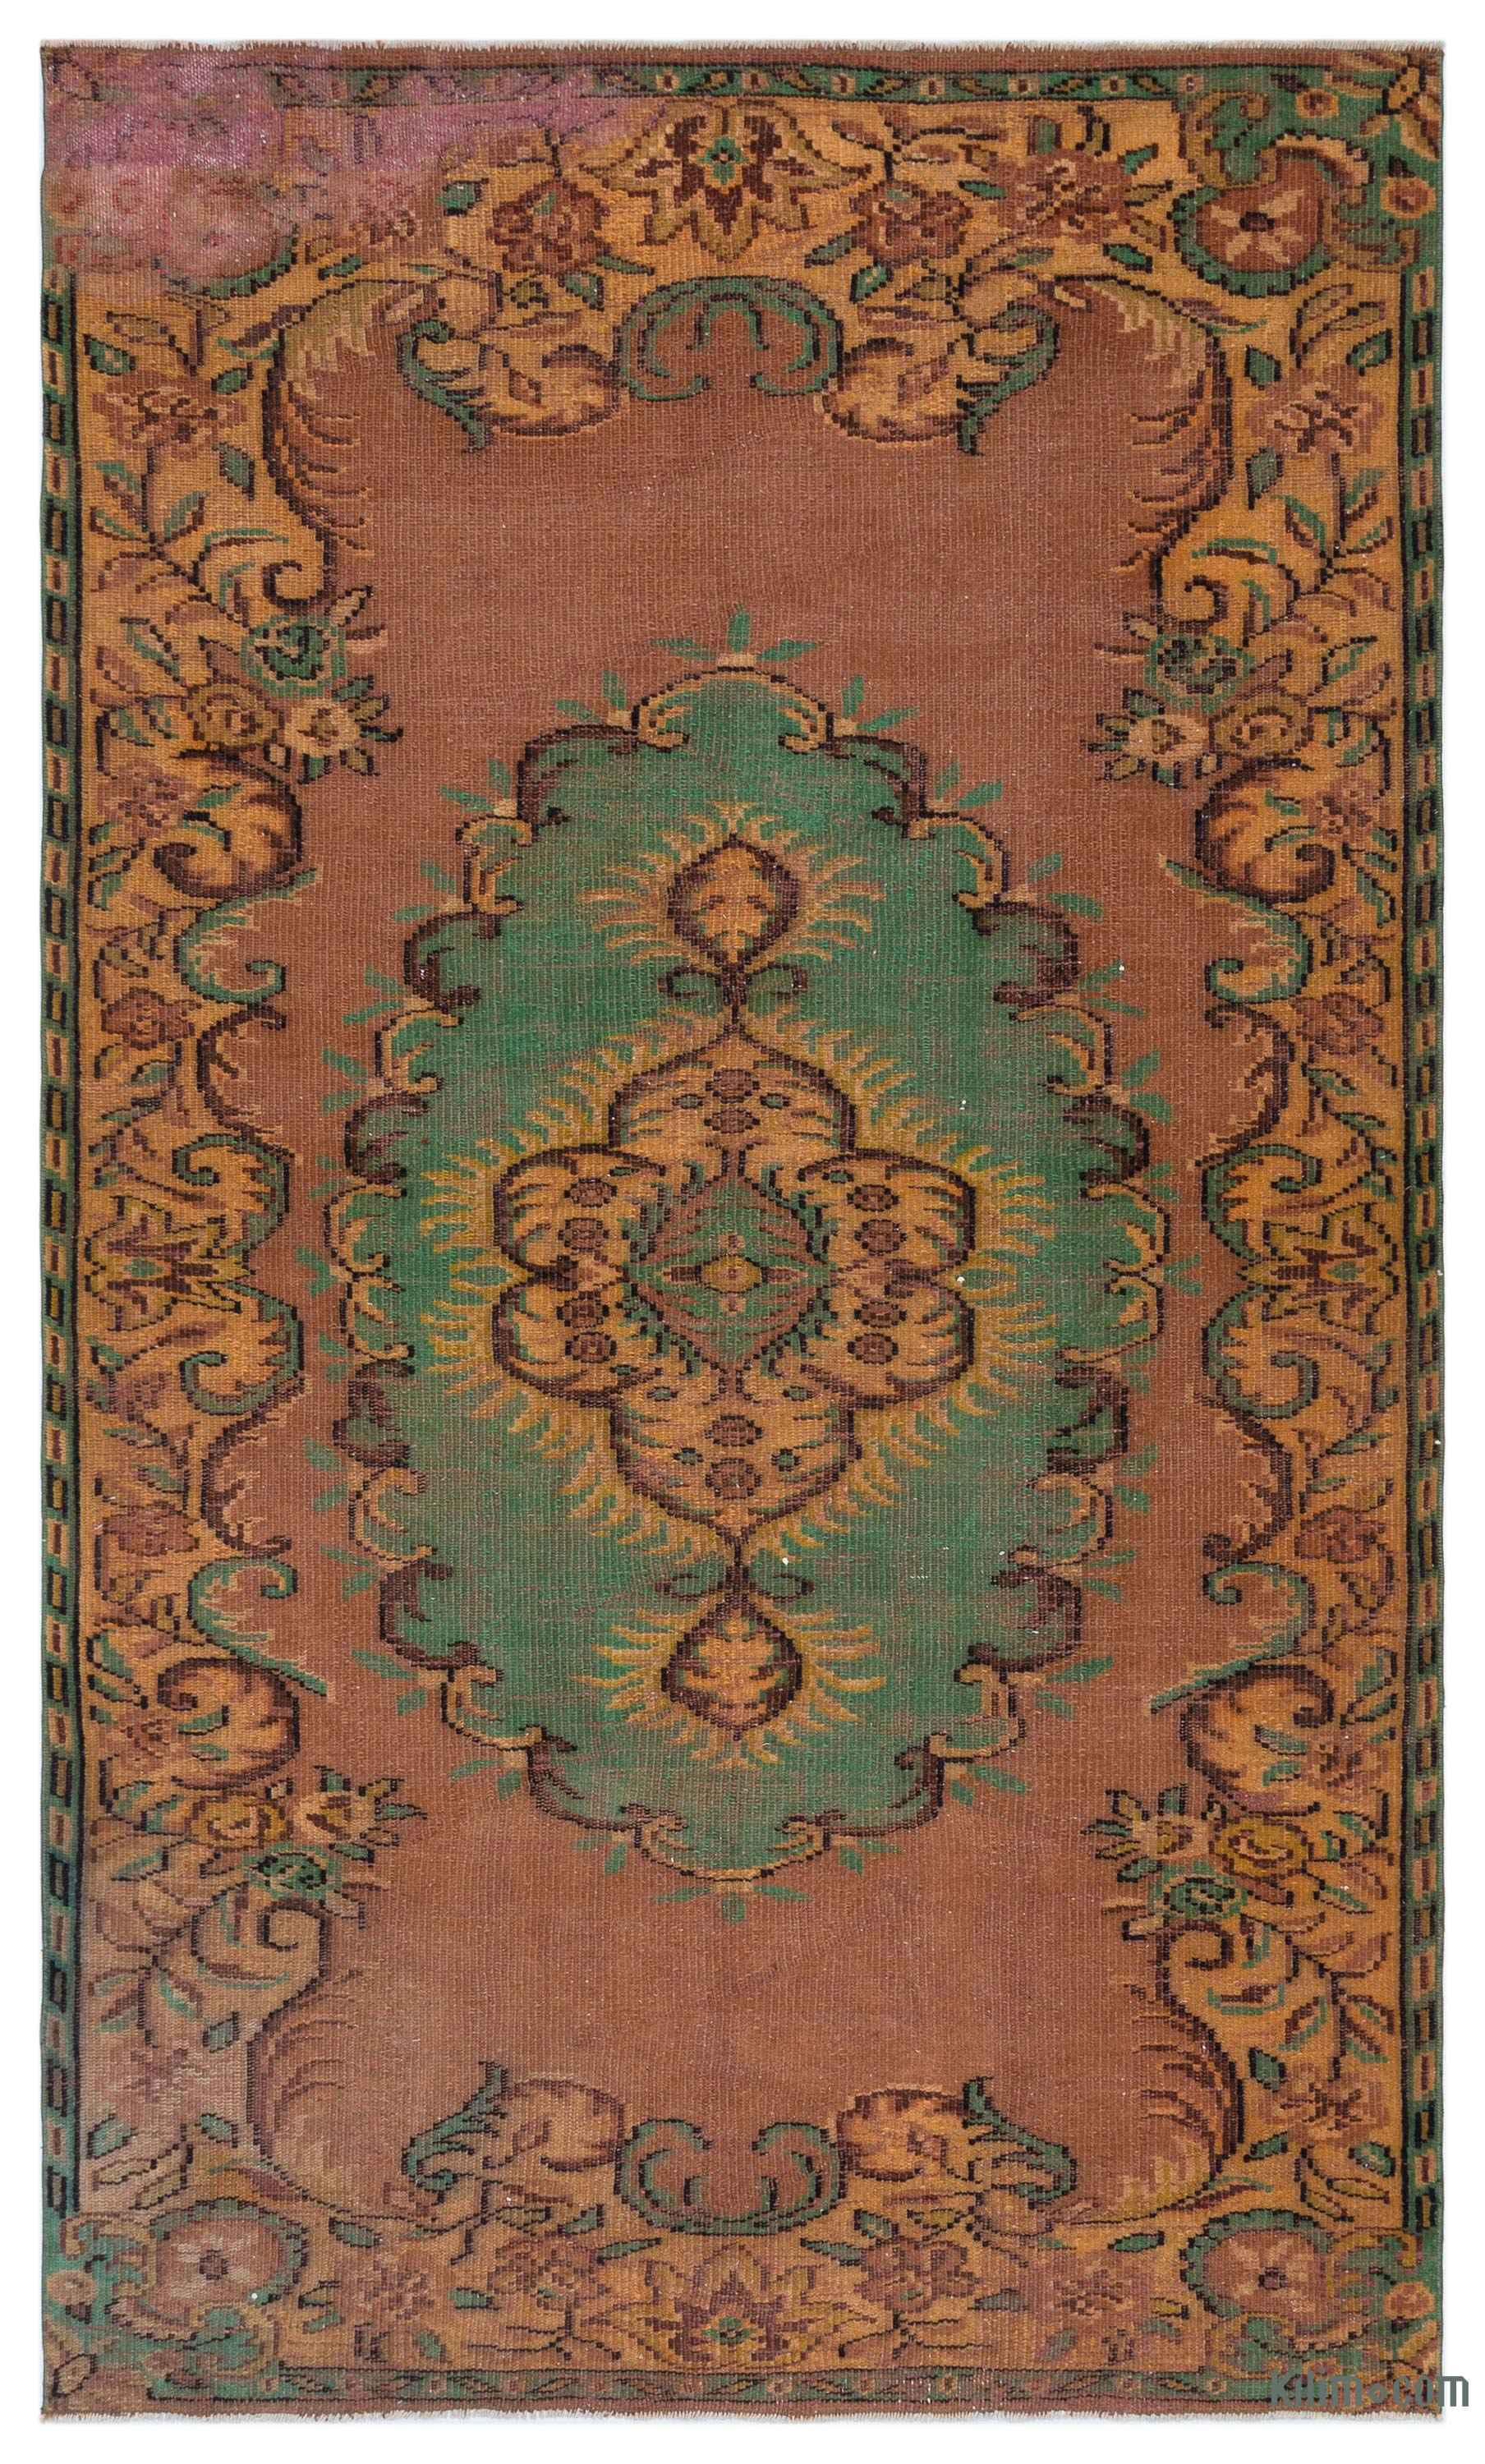 K0034699 Turkish Vintage Area Rug  64 In X 104 In Kilim Com The Source For Authentic Vintage Rugs Kilims Overdyed Oriental Rugs